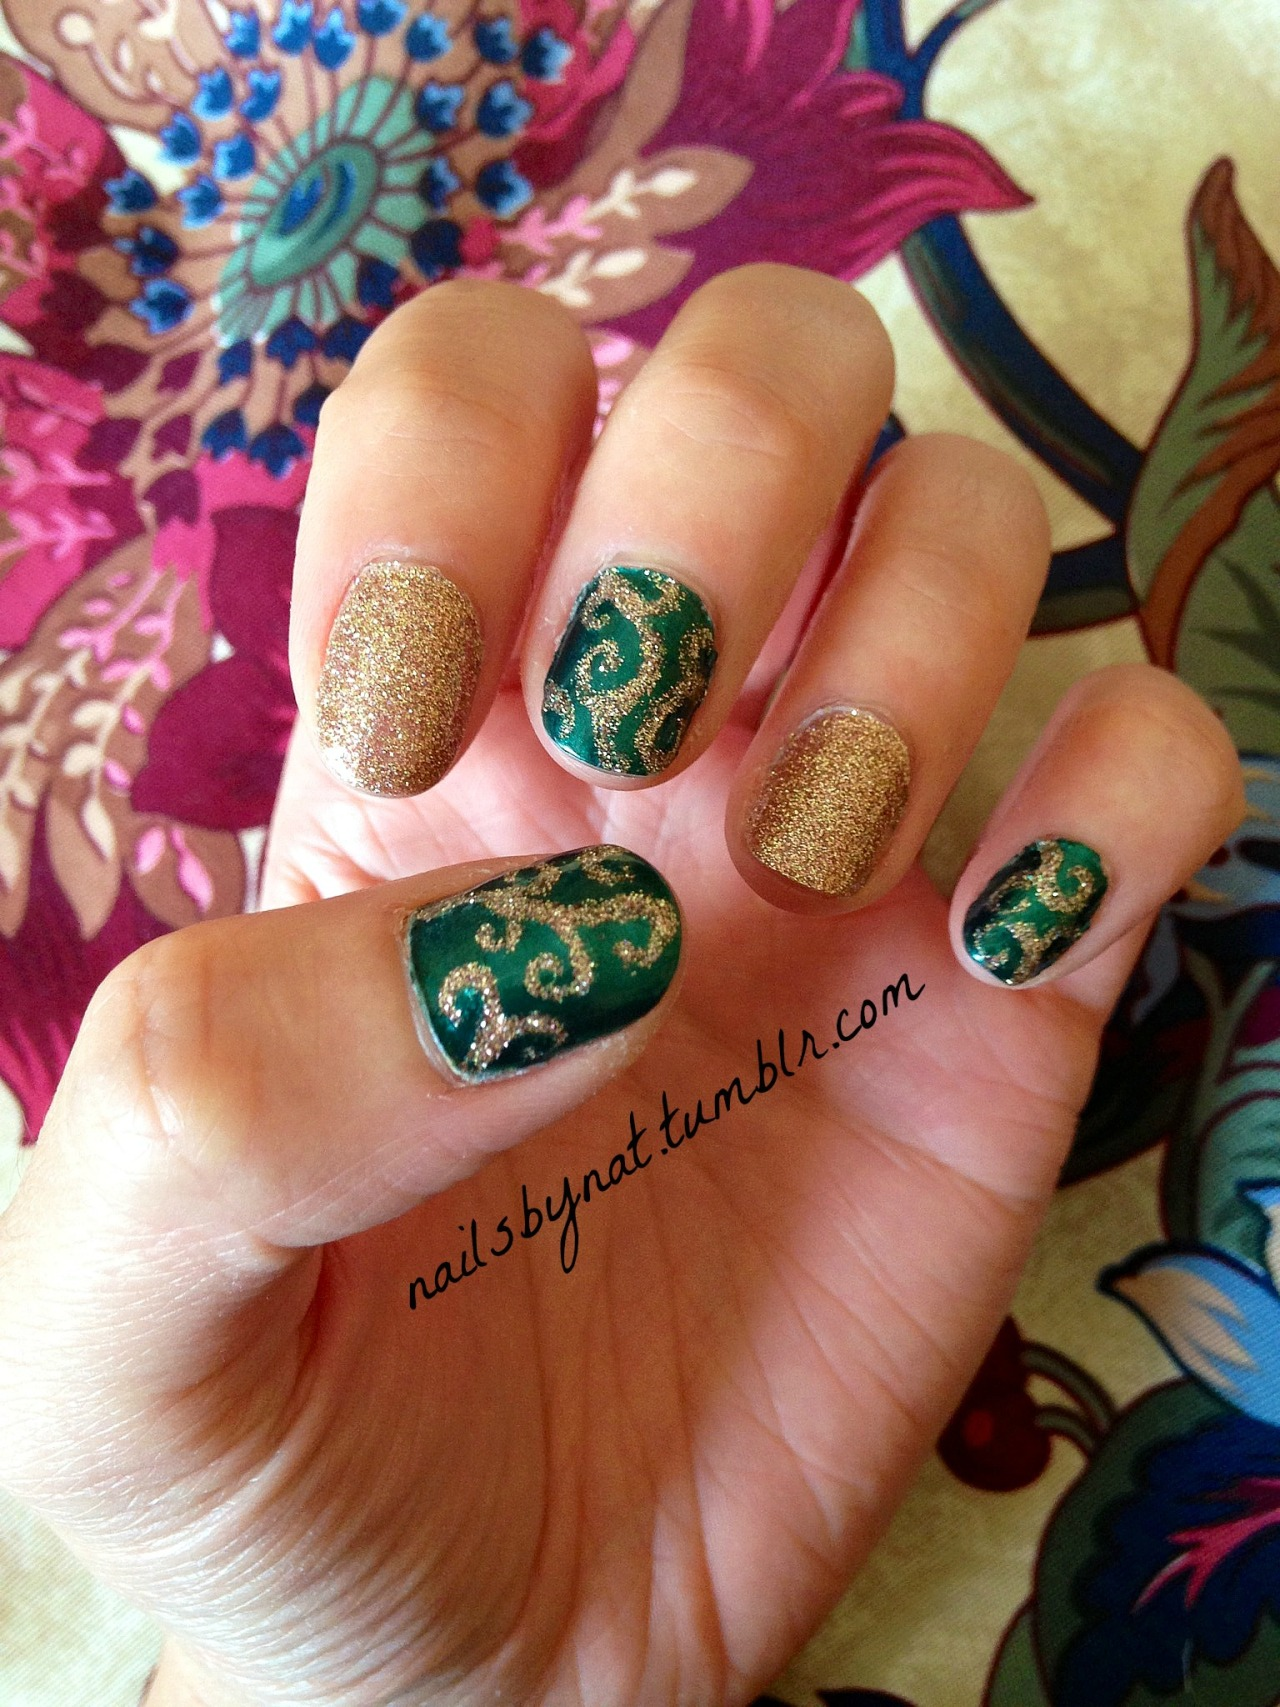 "nailsbynat:  So during winter break I did a little shopping and stopped by Sephora to buy my mom a birthday gift. I always love to look in the sale section too because they have really awesome stuff sometimes. I found this beautiful emerald green nail polish for only $5! This is just a little something I came up with :) 1/28/13 ———————————————————————————————————- Products used: Save The Nail ""Eau So Hydrated"" Base Coat Pantone Universe Jewel Lacquer nail polish in ""Evergreen"" China Glaze nail polish in ""Champagne Kisses"" Seche Vite Dry Fast Top Coat"